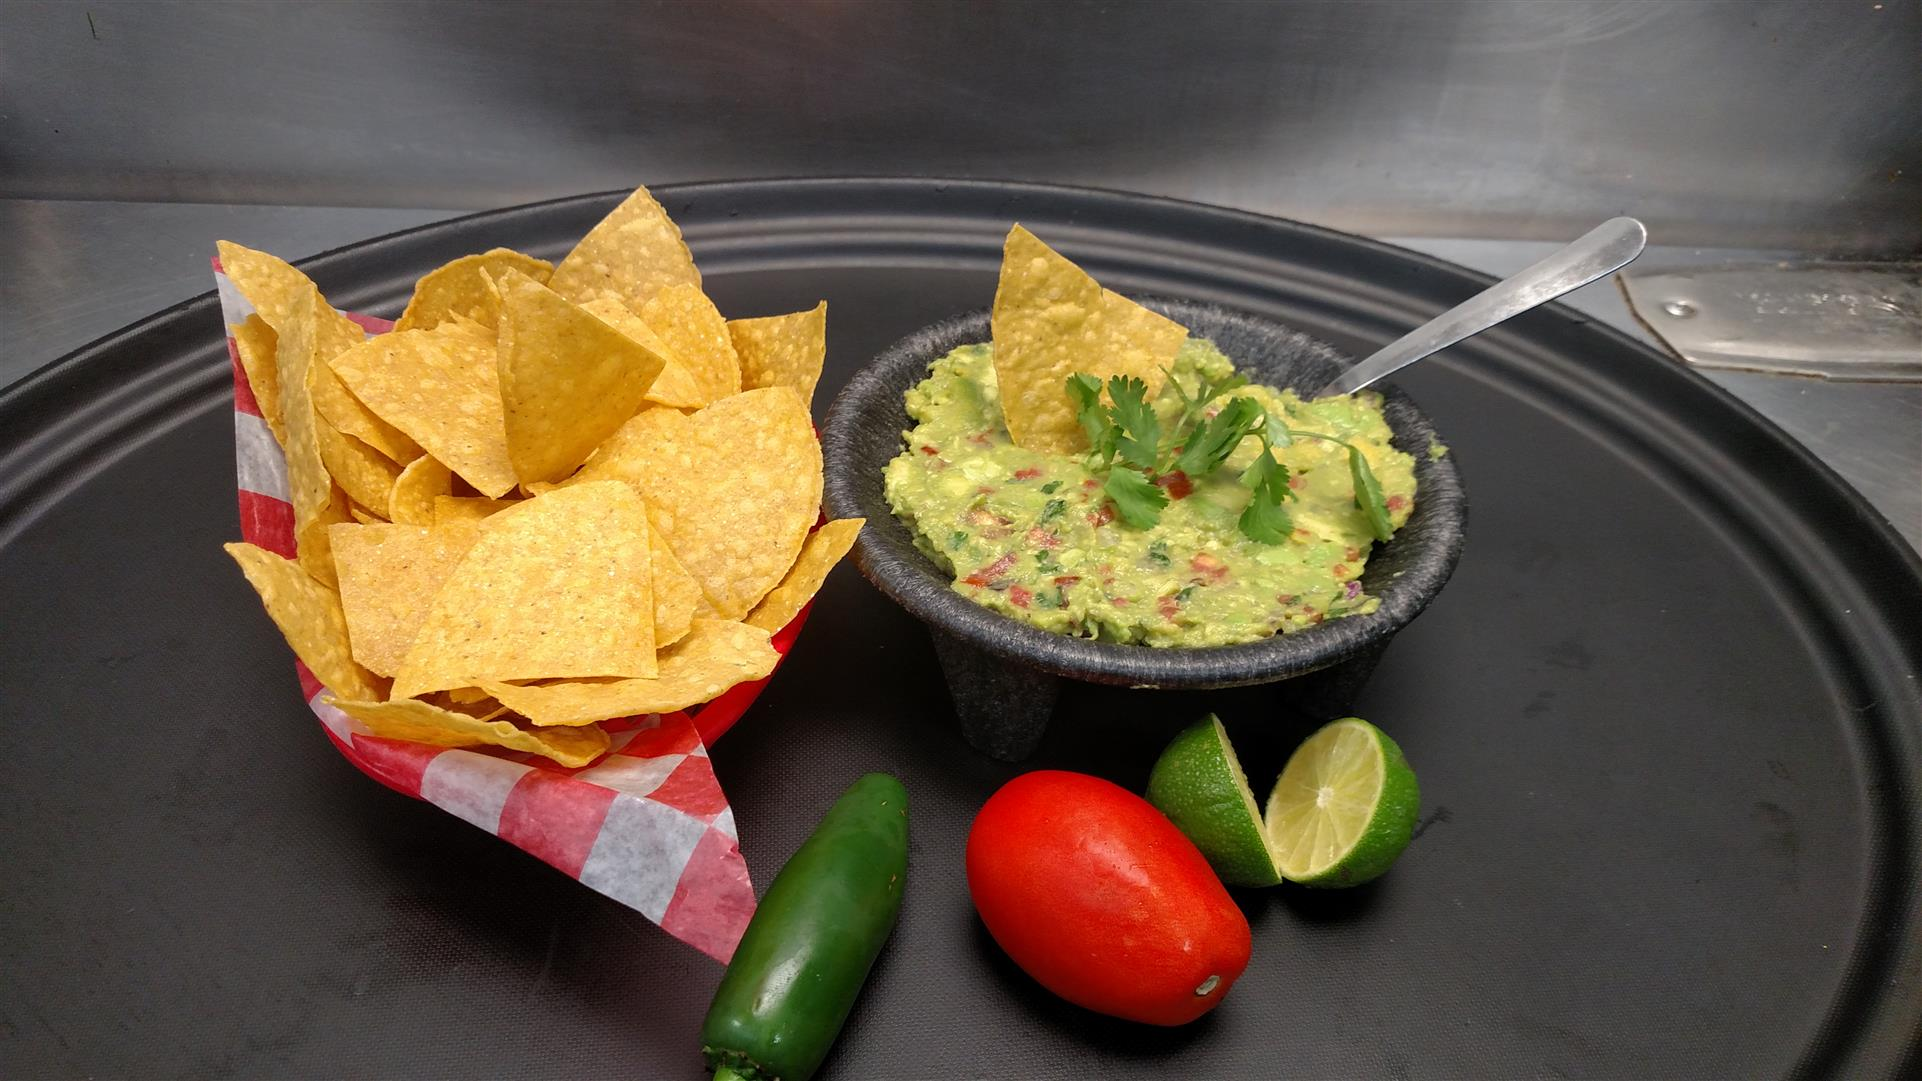 tray with bowl of guacamole and a basket of chips with a tomato, lime, and pepper on the side